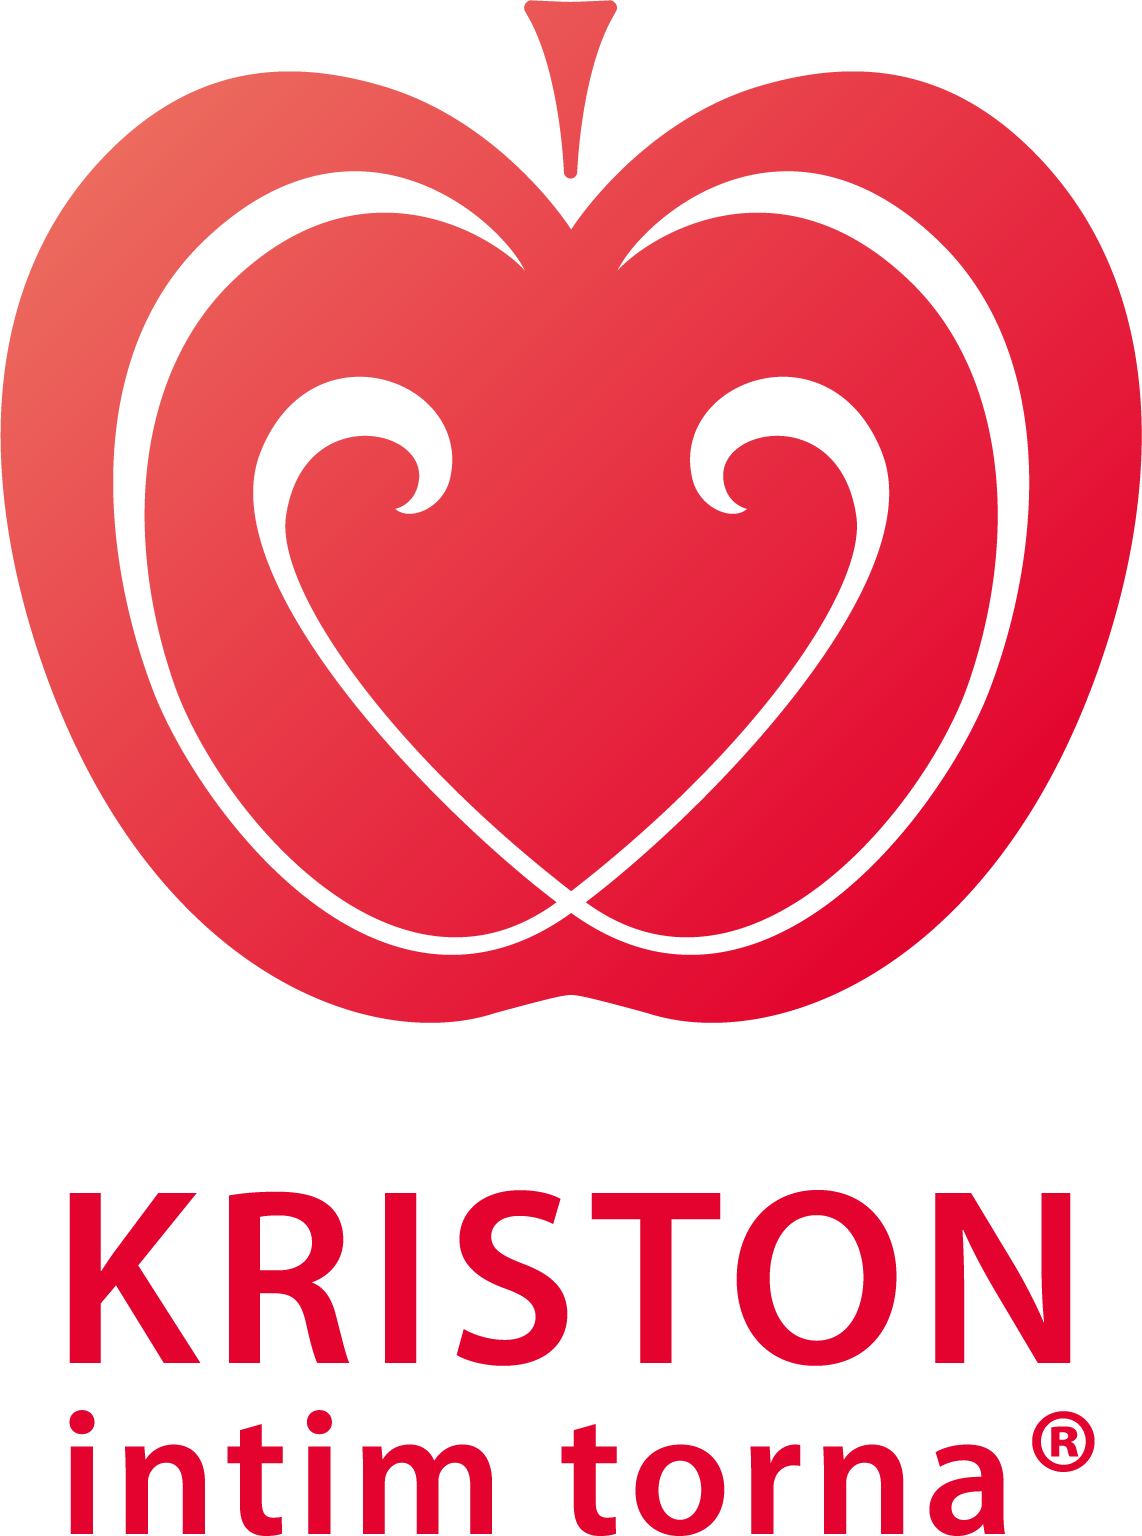 Kriston Intim Torna